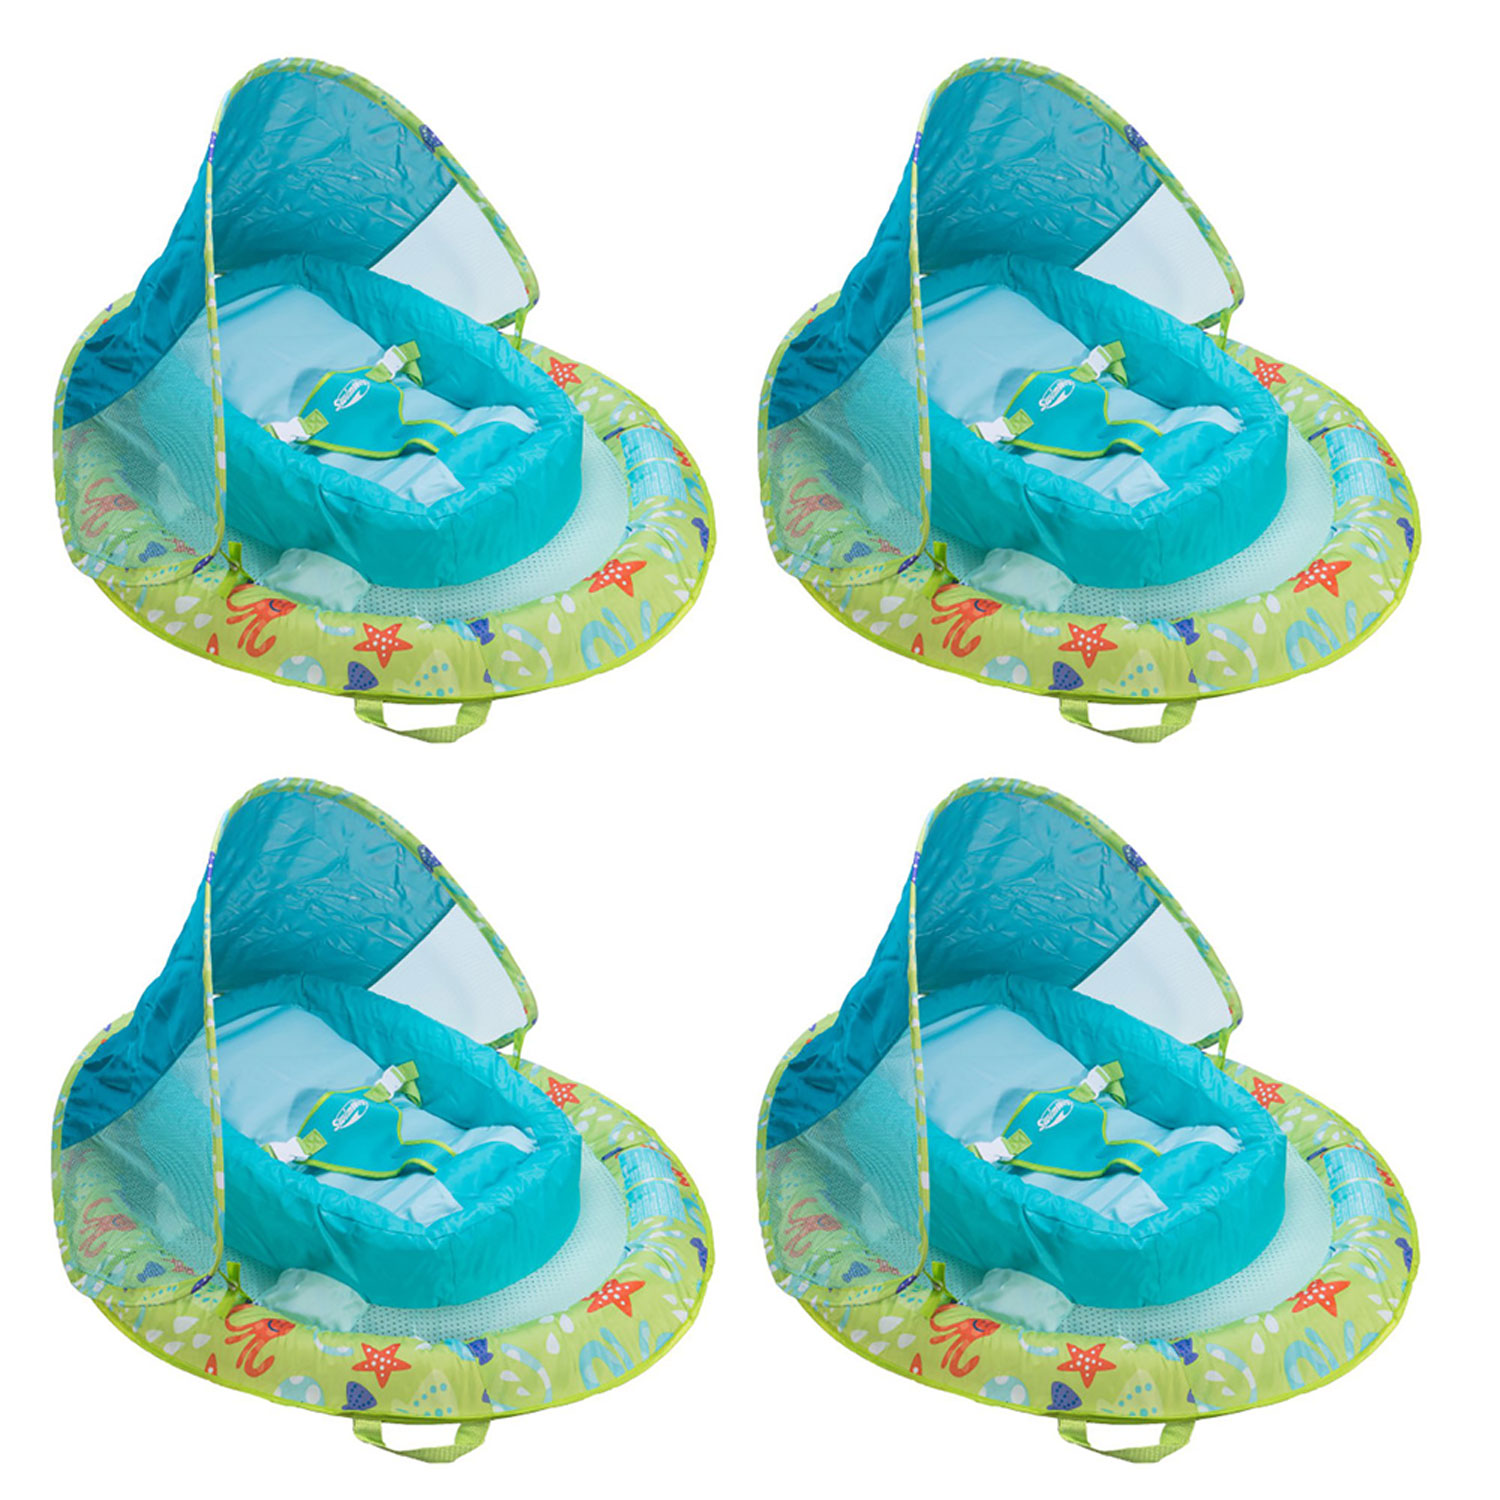 Details about SwimWays Infant Spring Inflatable Swimming Pool Float with  Canopy (4 Pack)